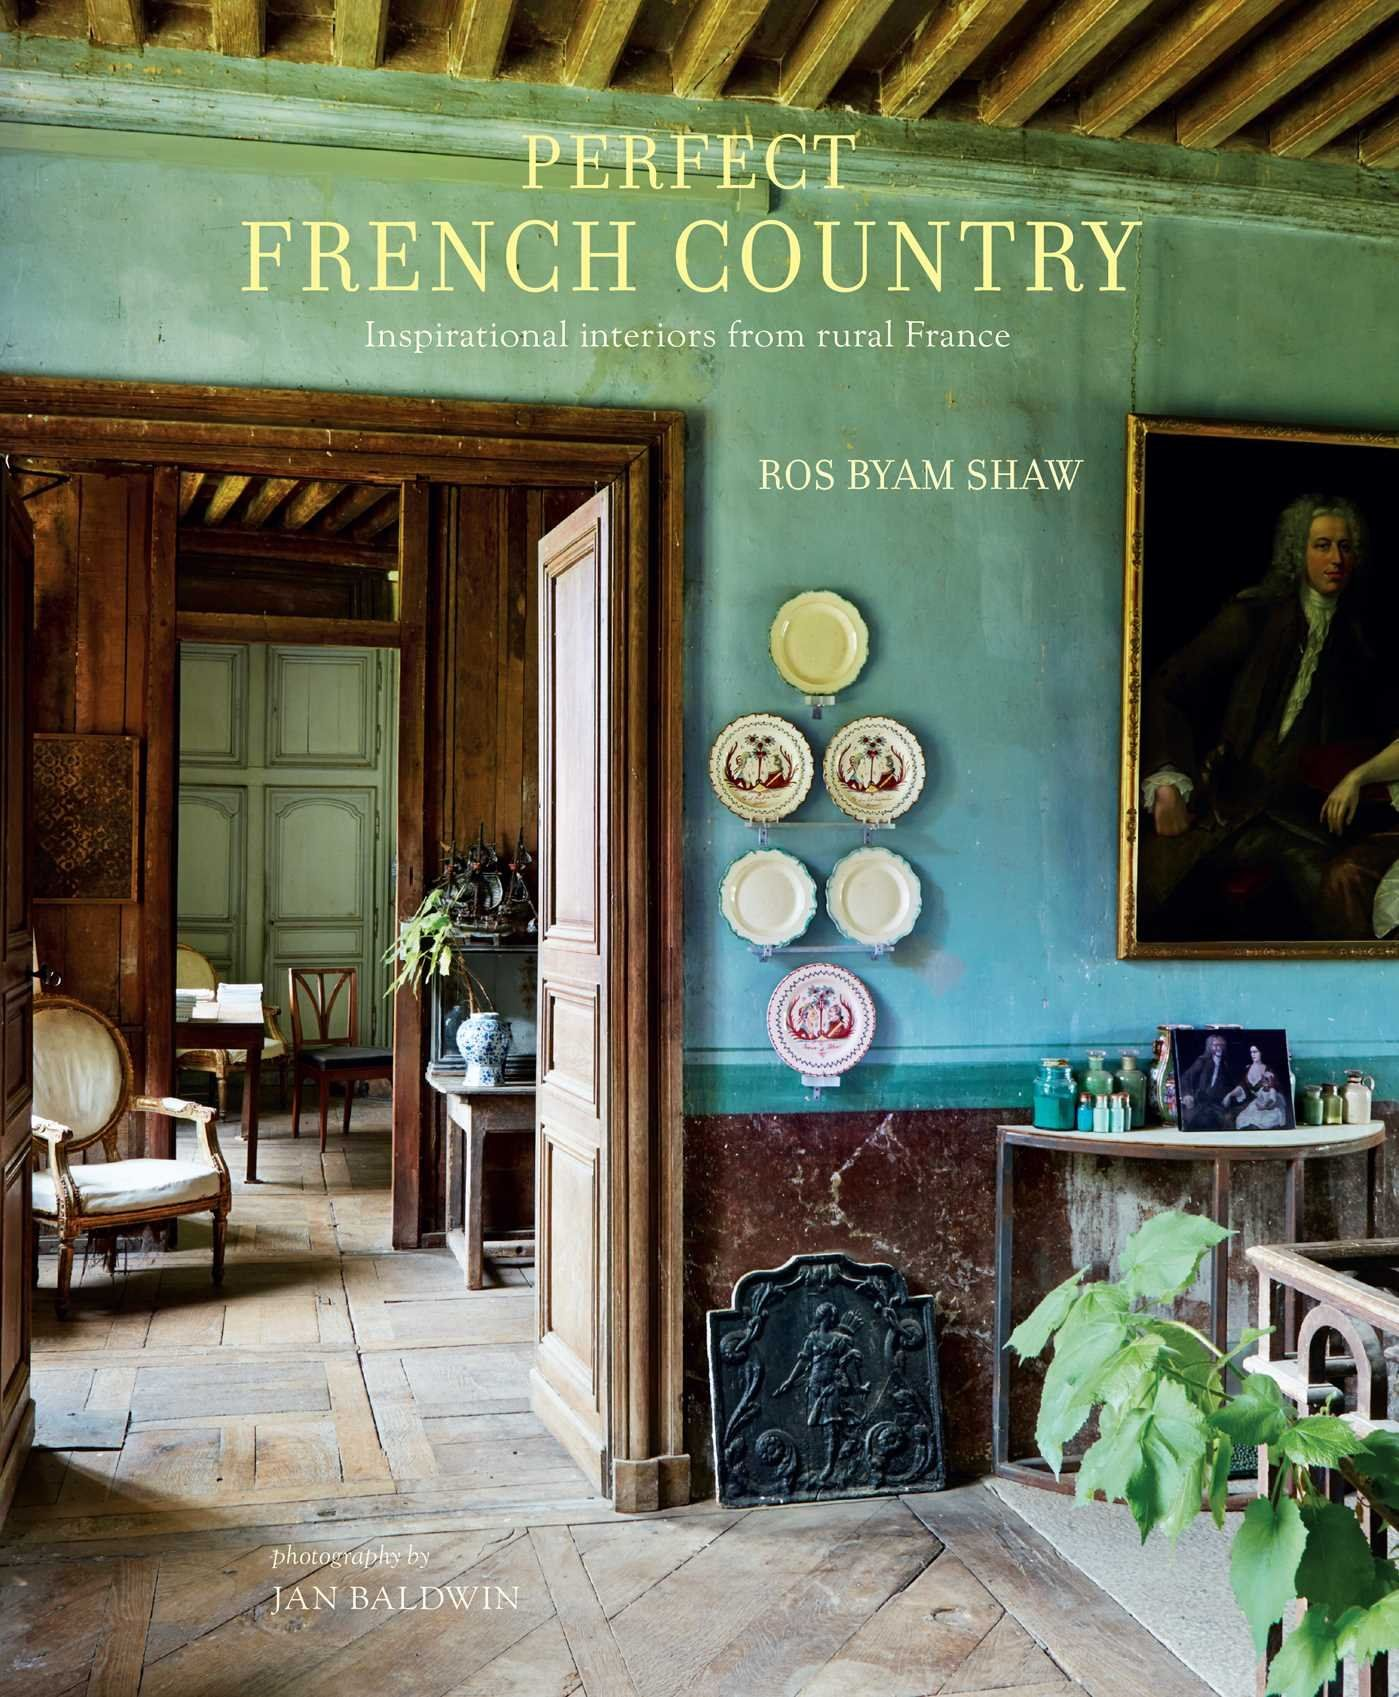 Country Home Furniture Store Model Interior perfect french countryros byam shaw | my bookshelf | pinterest